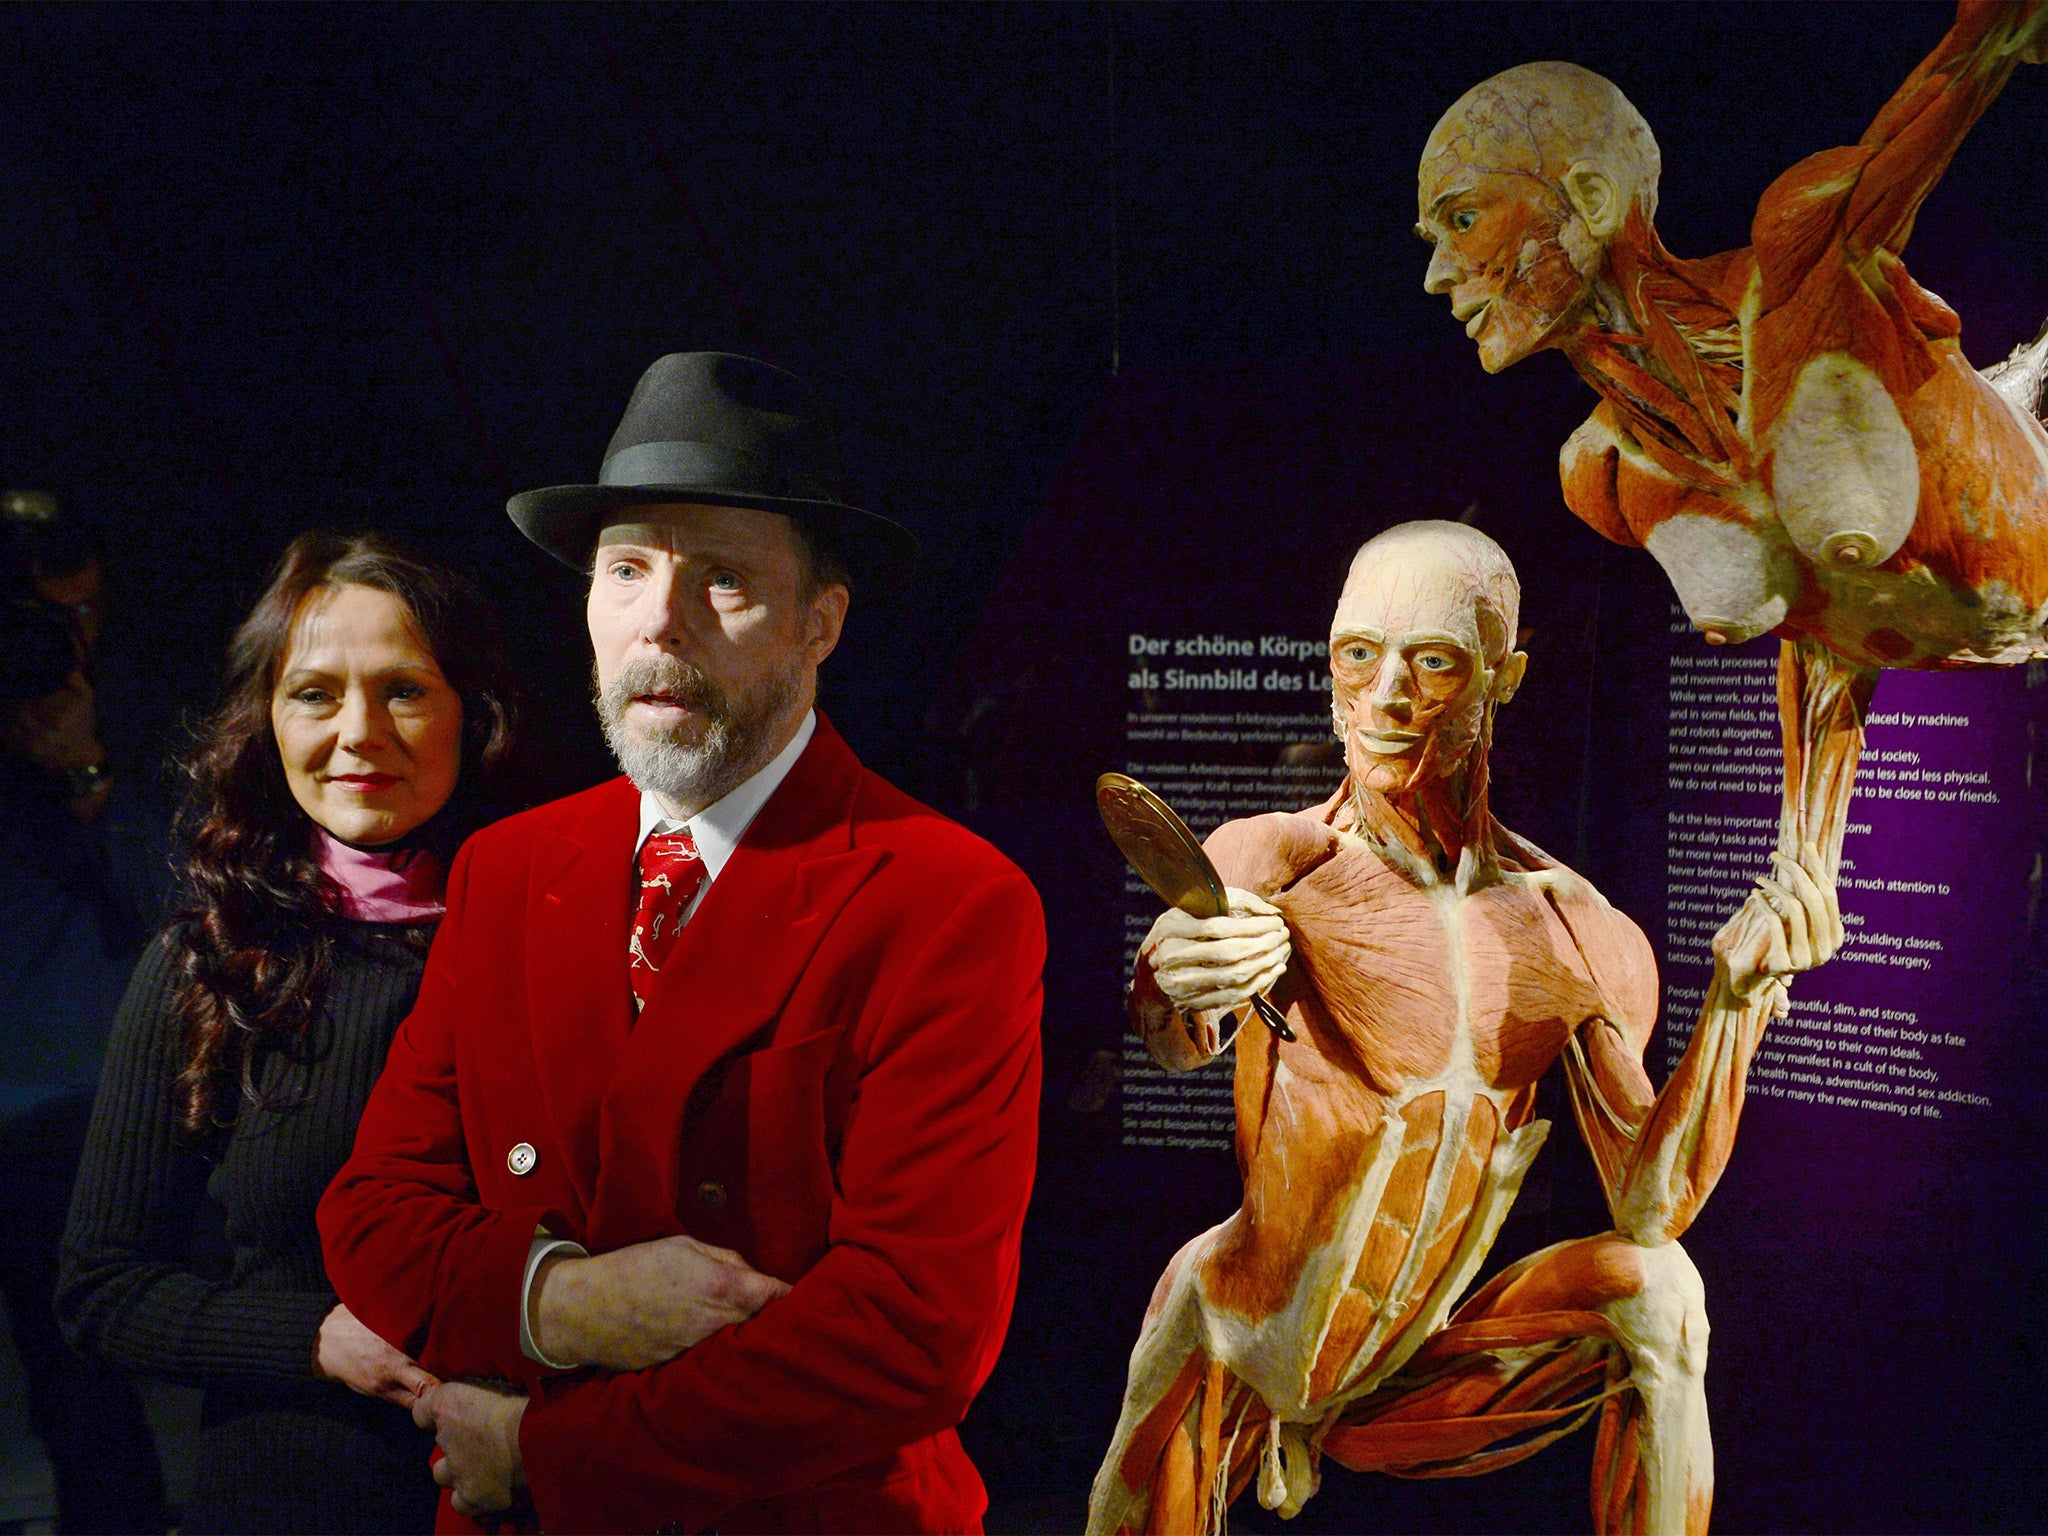 7a88e097 Bodyworlds museum: Dr Gunther von Hagens has battled legal threats,  Parkinson's disease, and the threat of bankruptcy